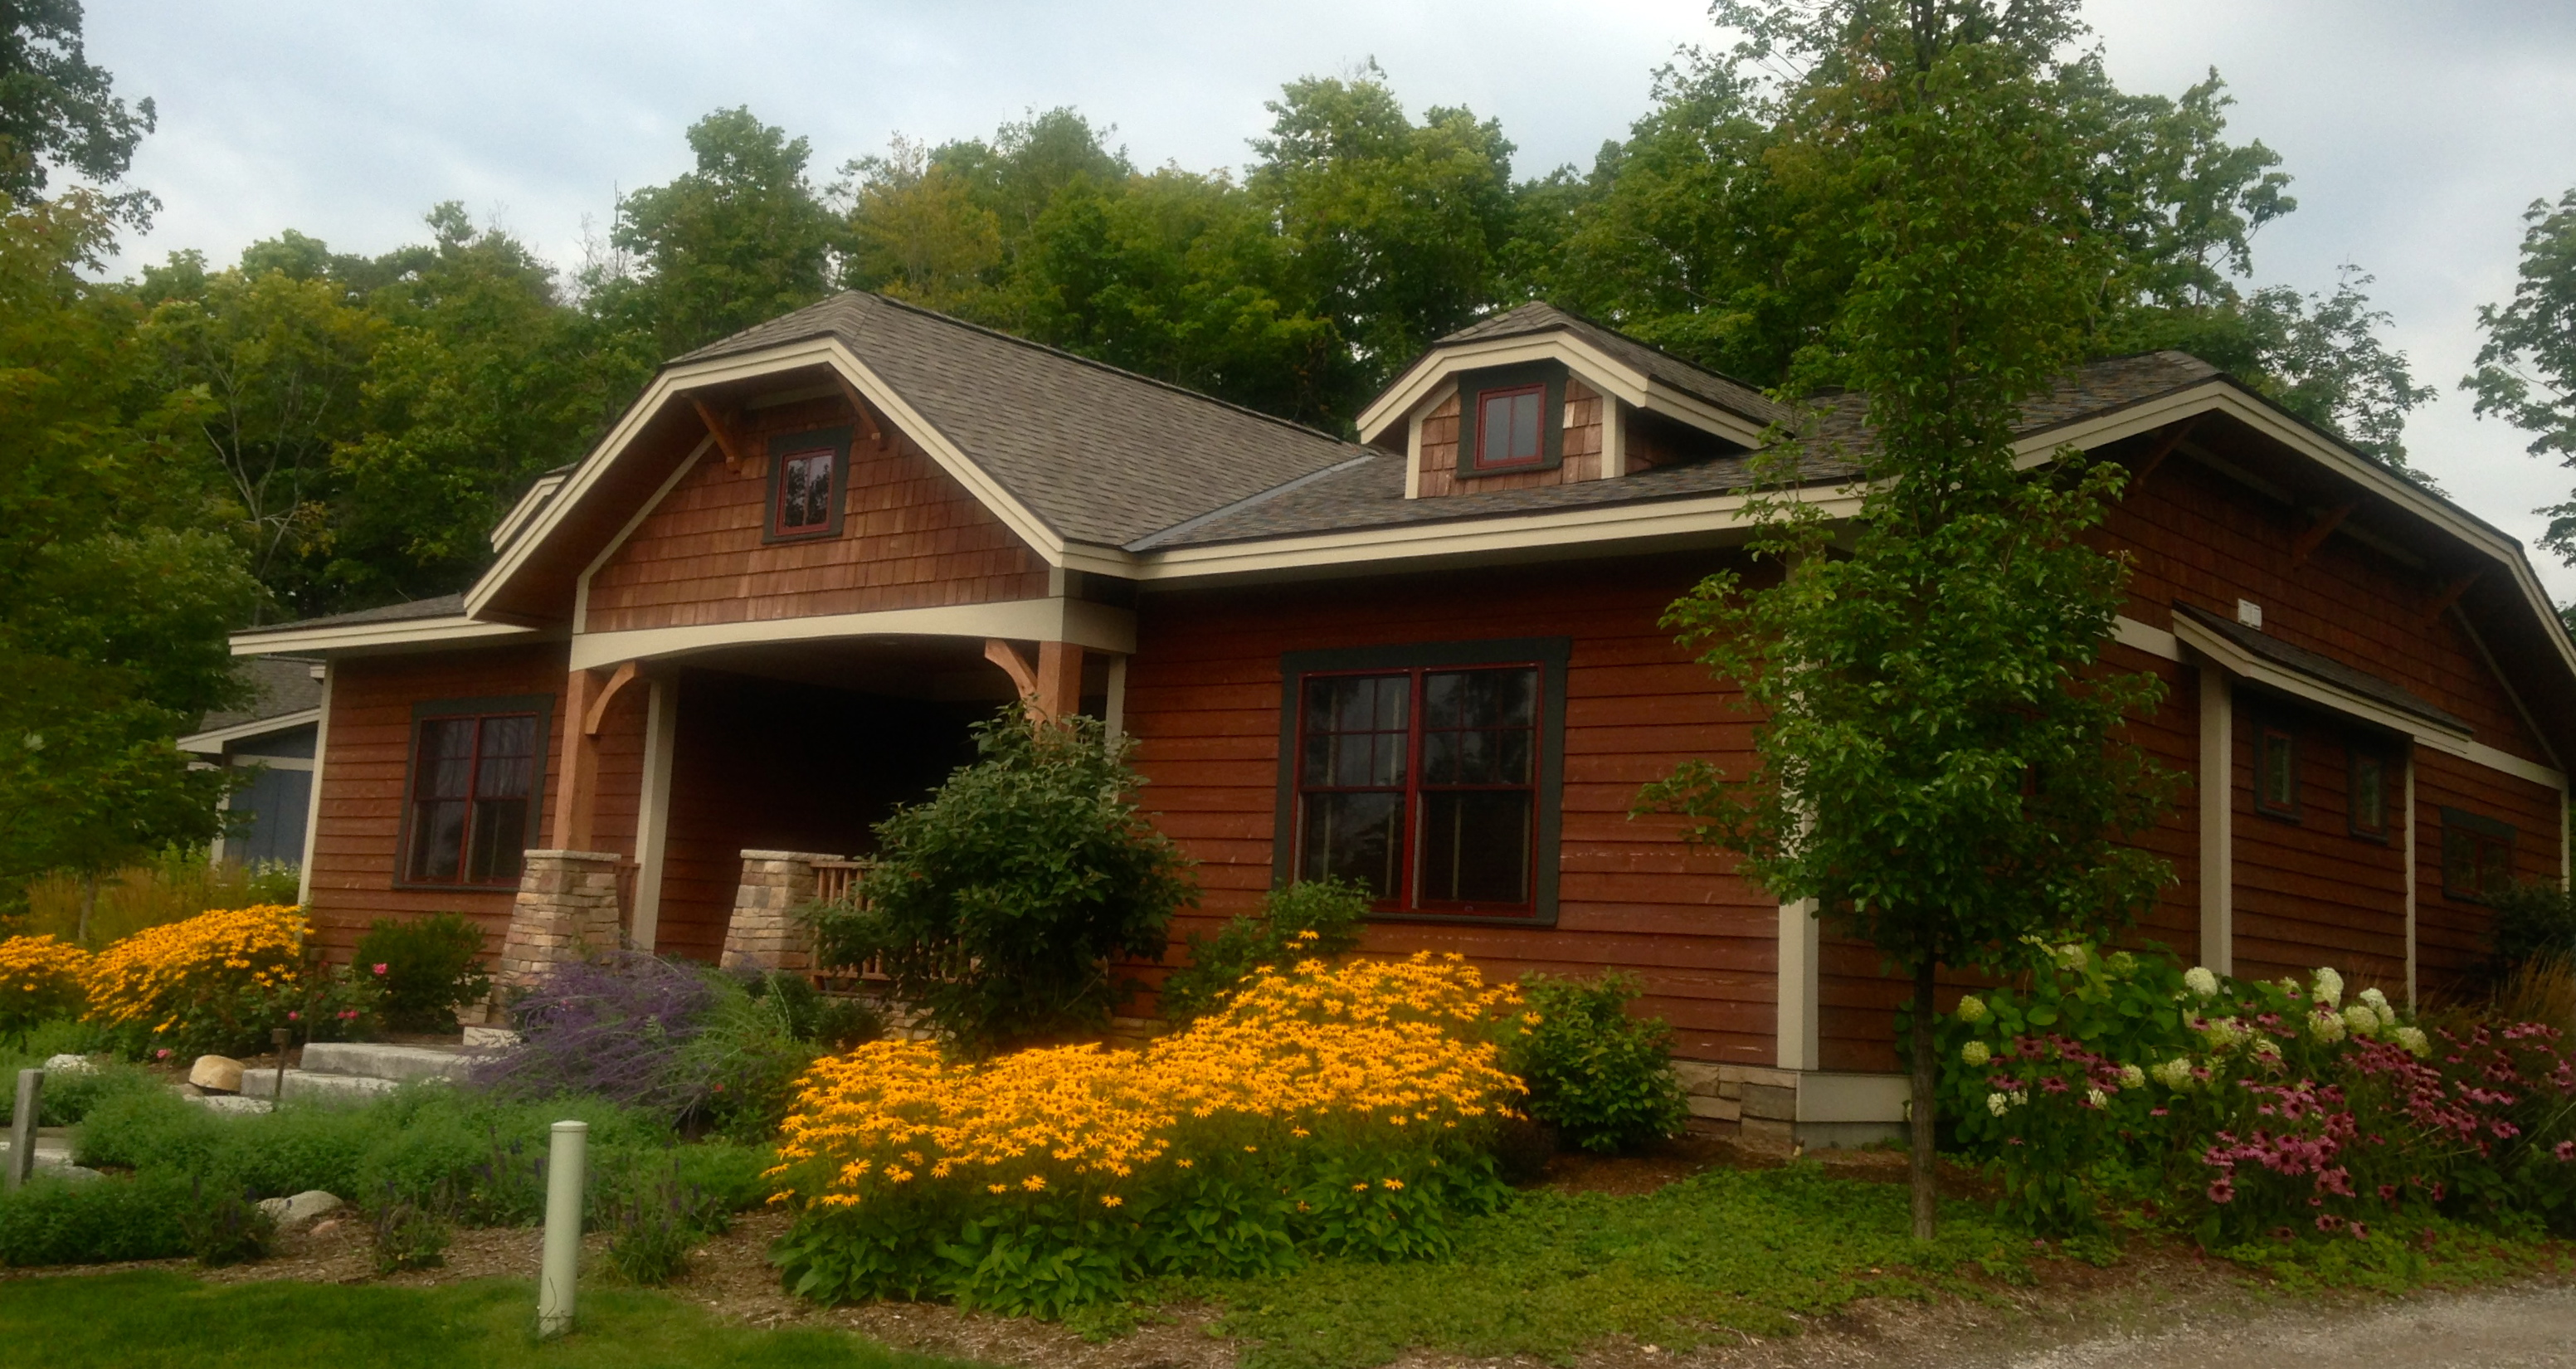 tag in crystal cottages summer cottage resort mountain michigan s img travels tonja